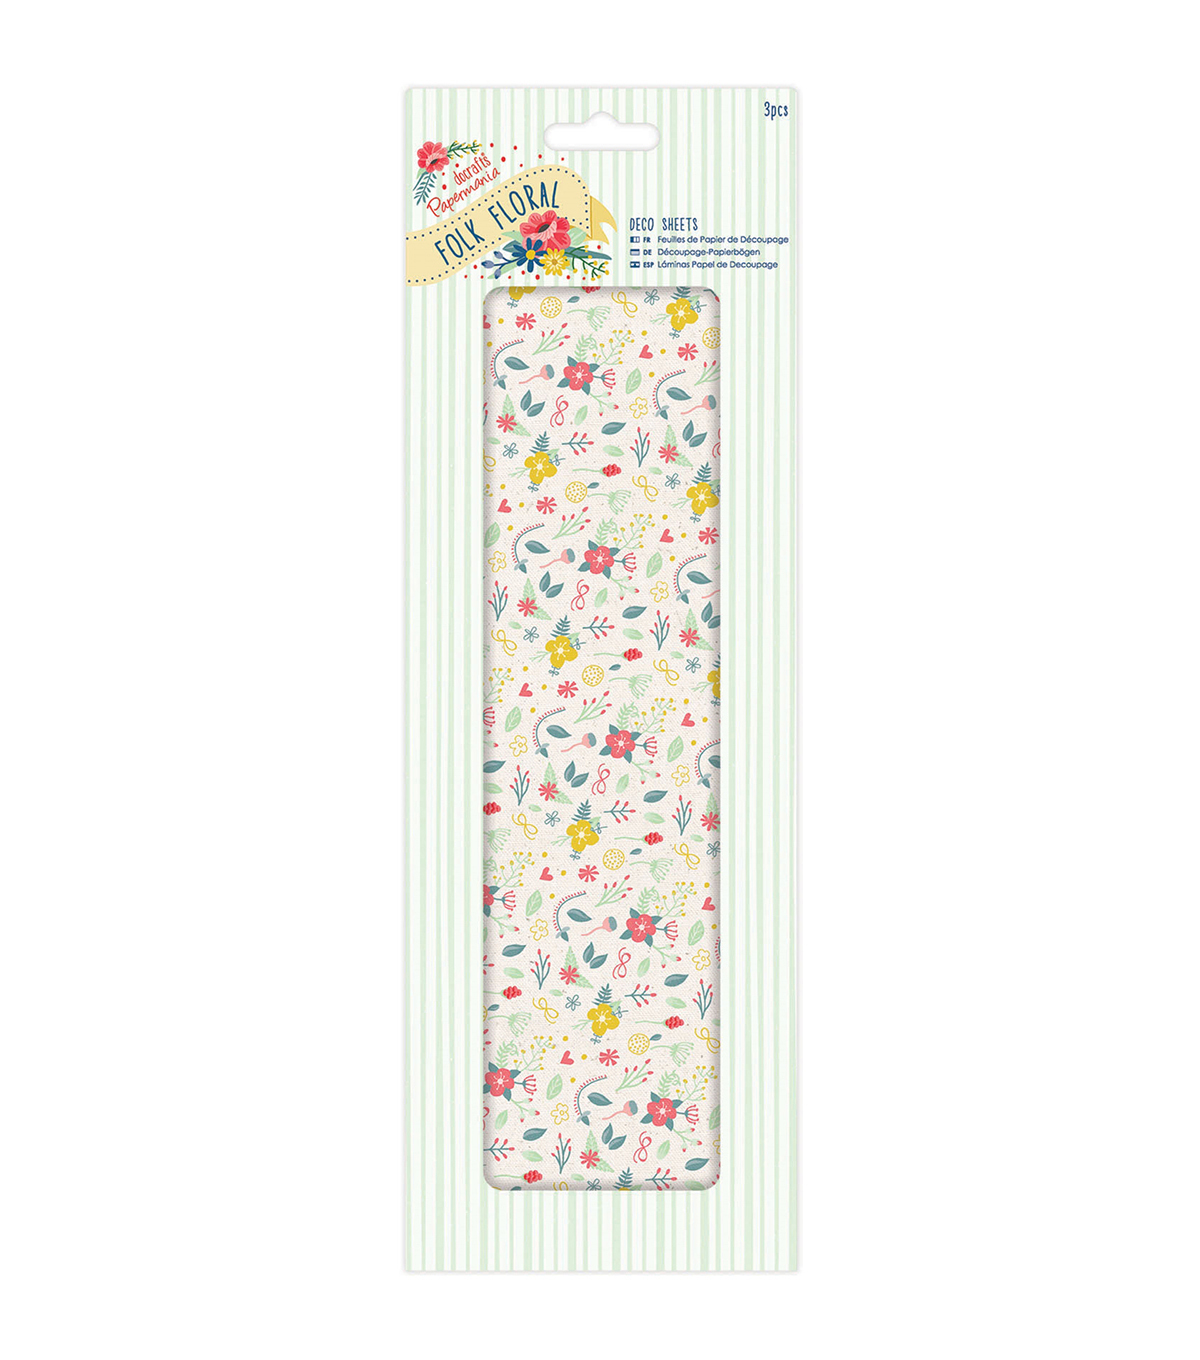 Papermania Folk Floral 3ct Deco Sheets-Wildflowers